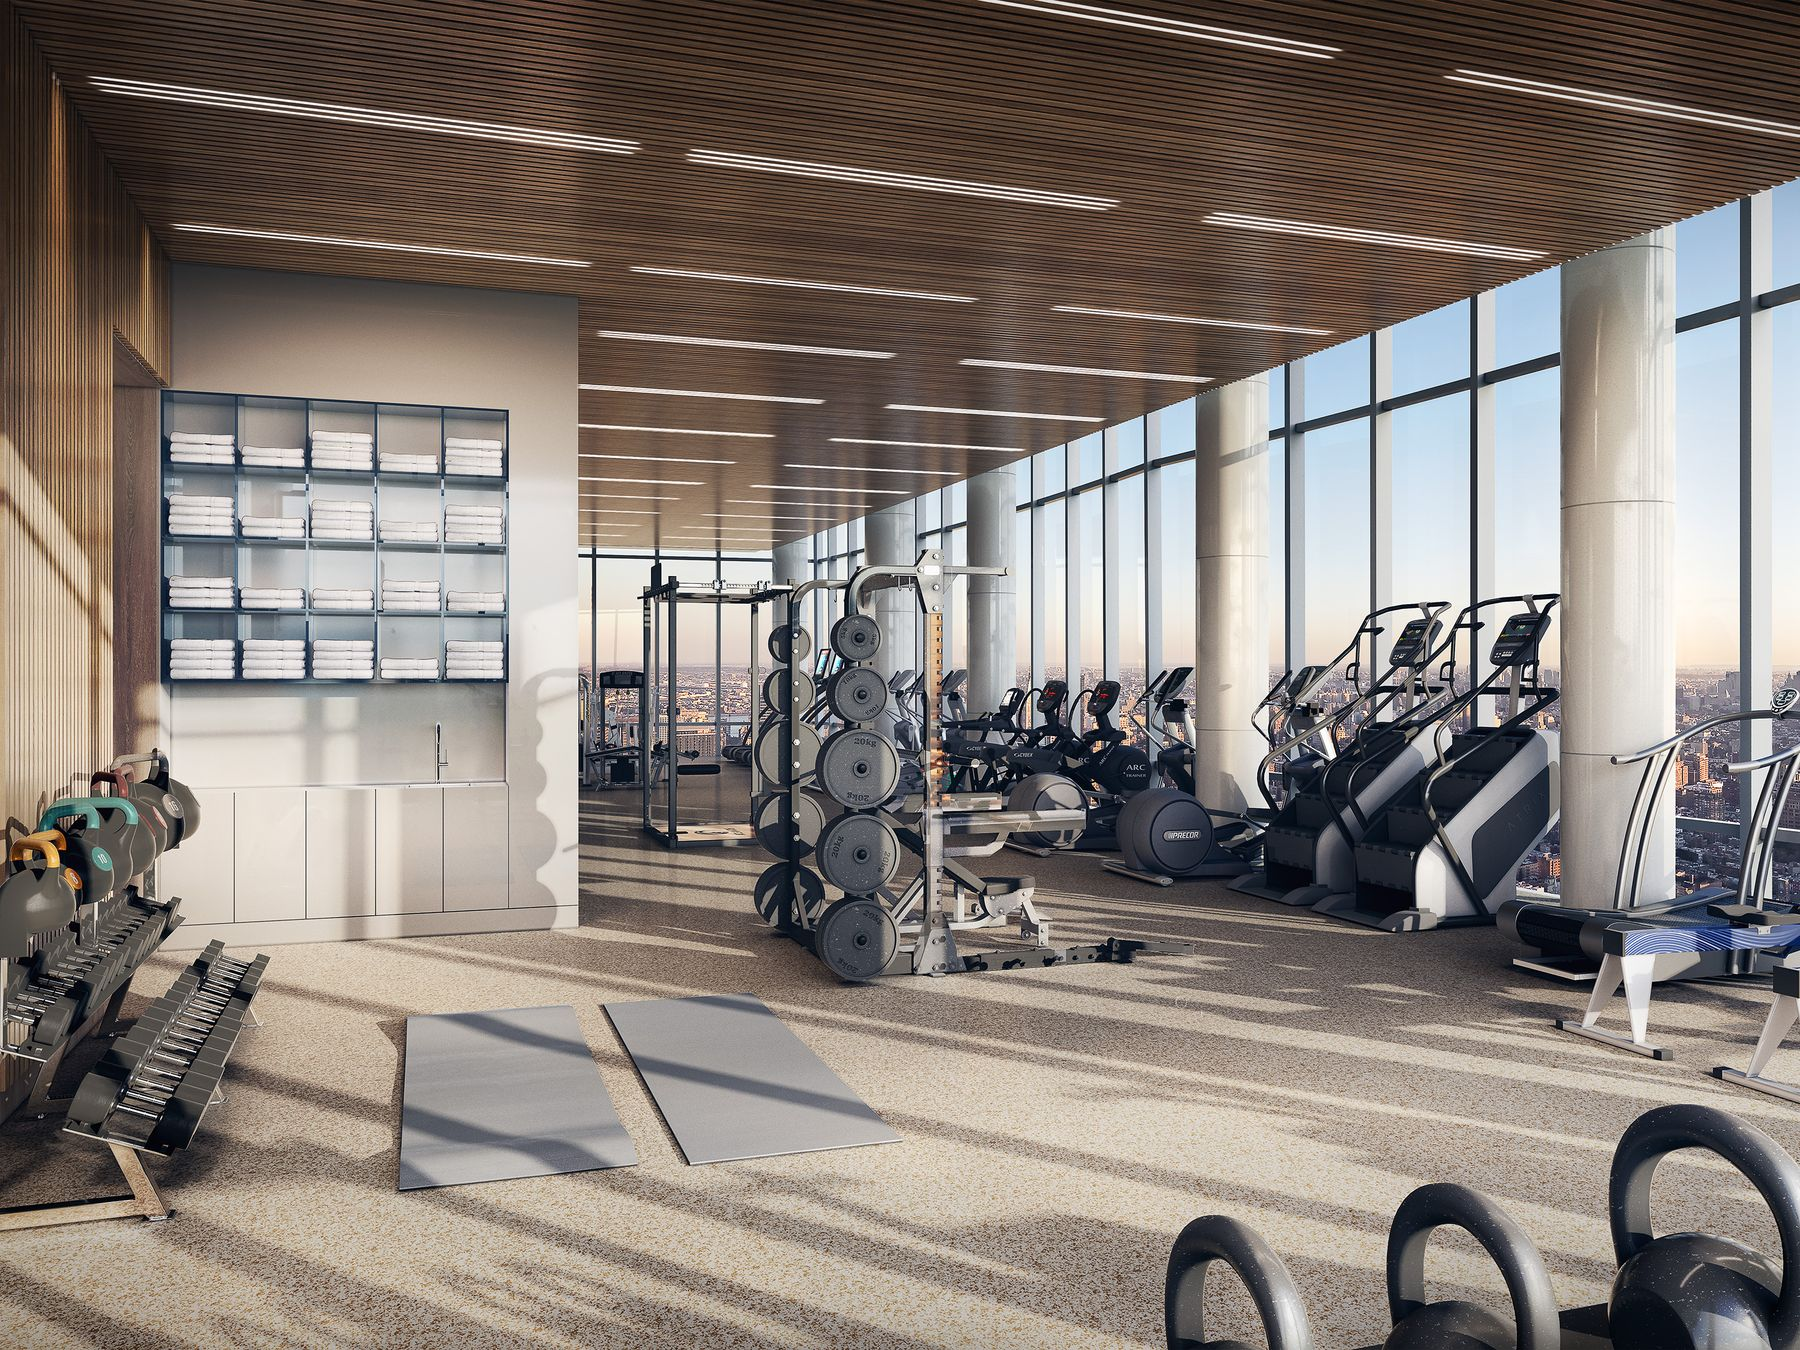 Fitness Center Preview the Over-The-Top Amenities Coming to 15 Hudson Yards Related Companies Oxford Properties Rockwell Group Diller Scofidio + Renfro